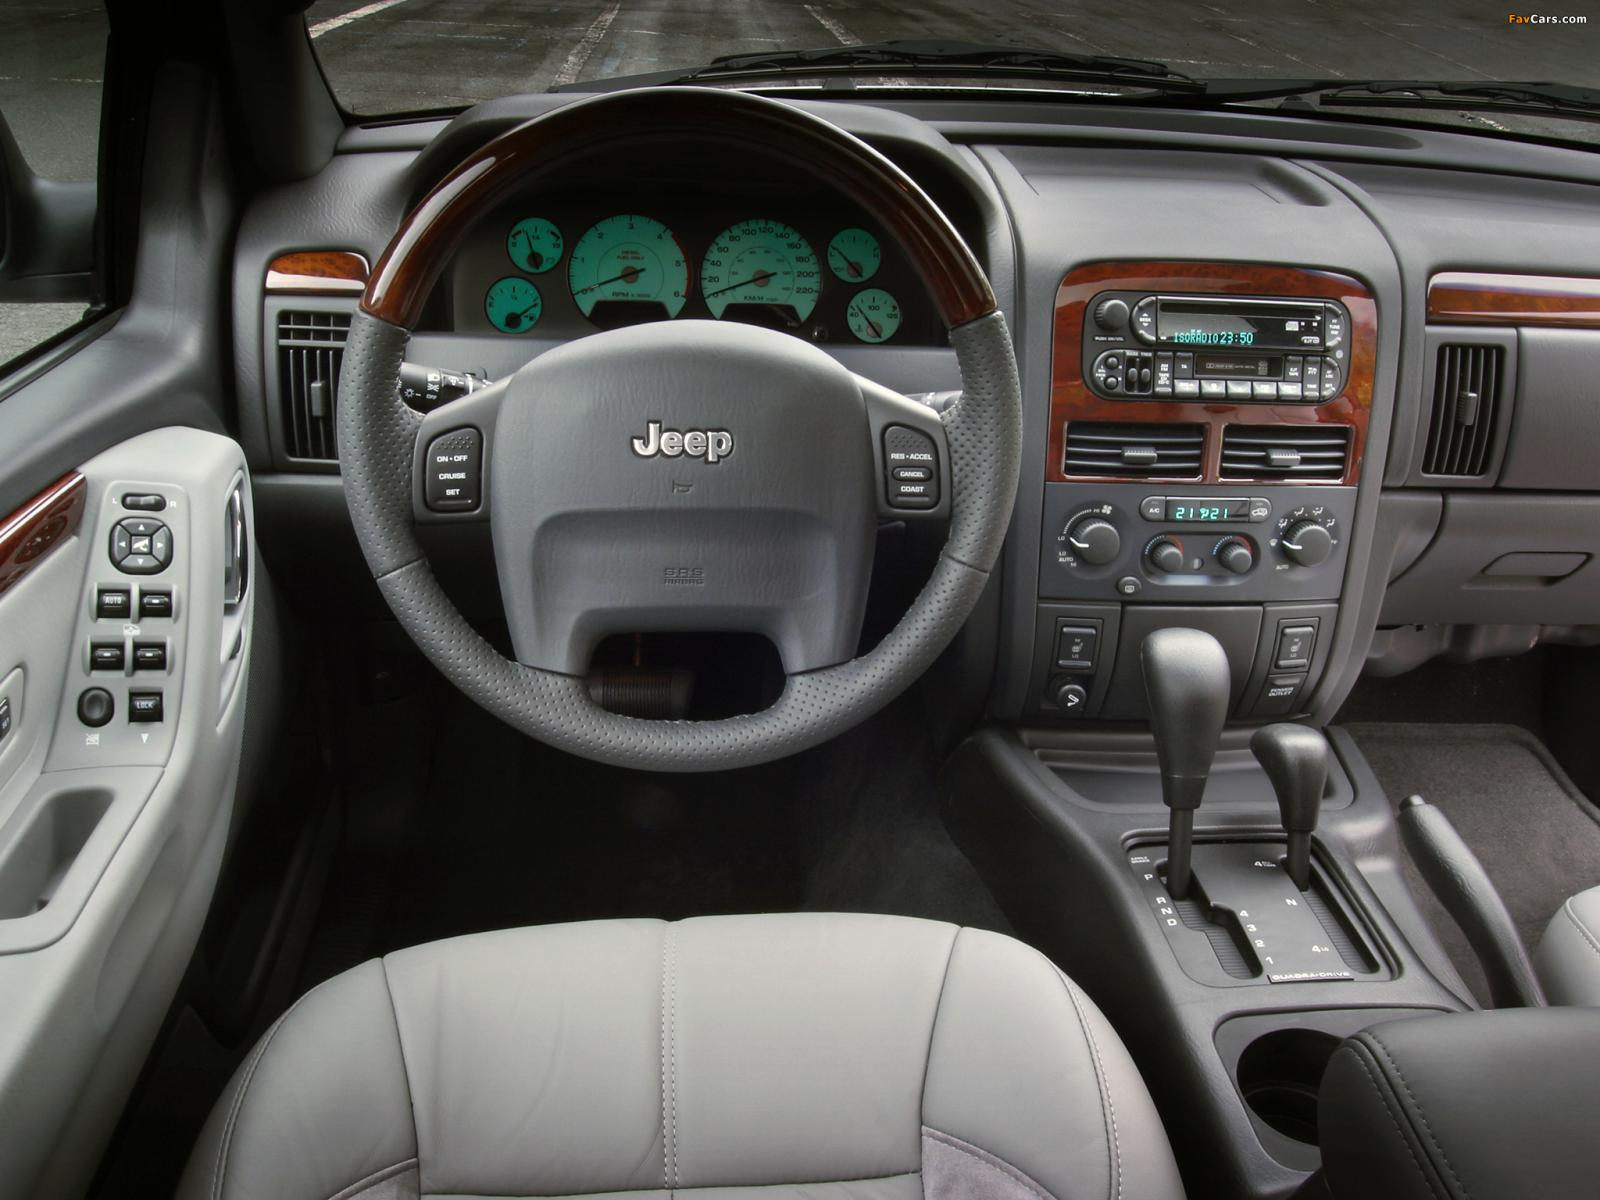 Exceptional 2002 Jeep Grand Cherokee #6